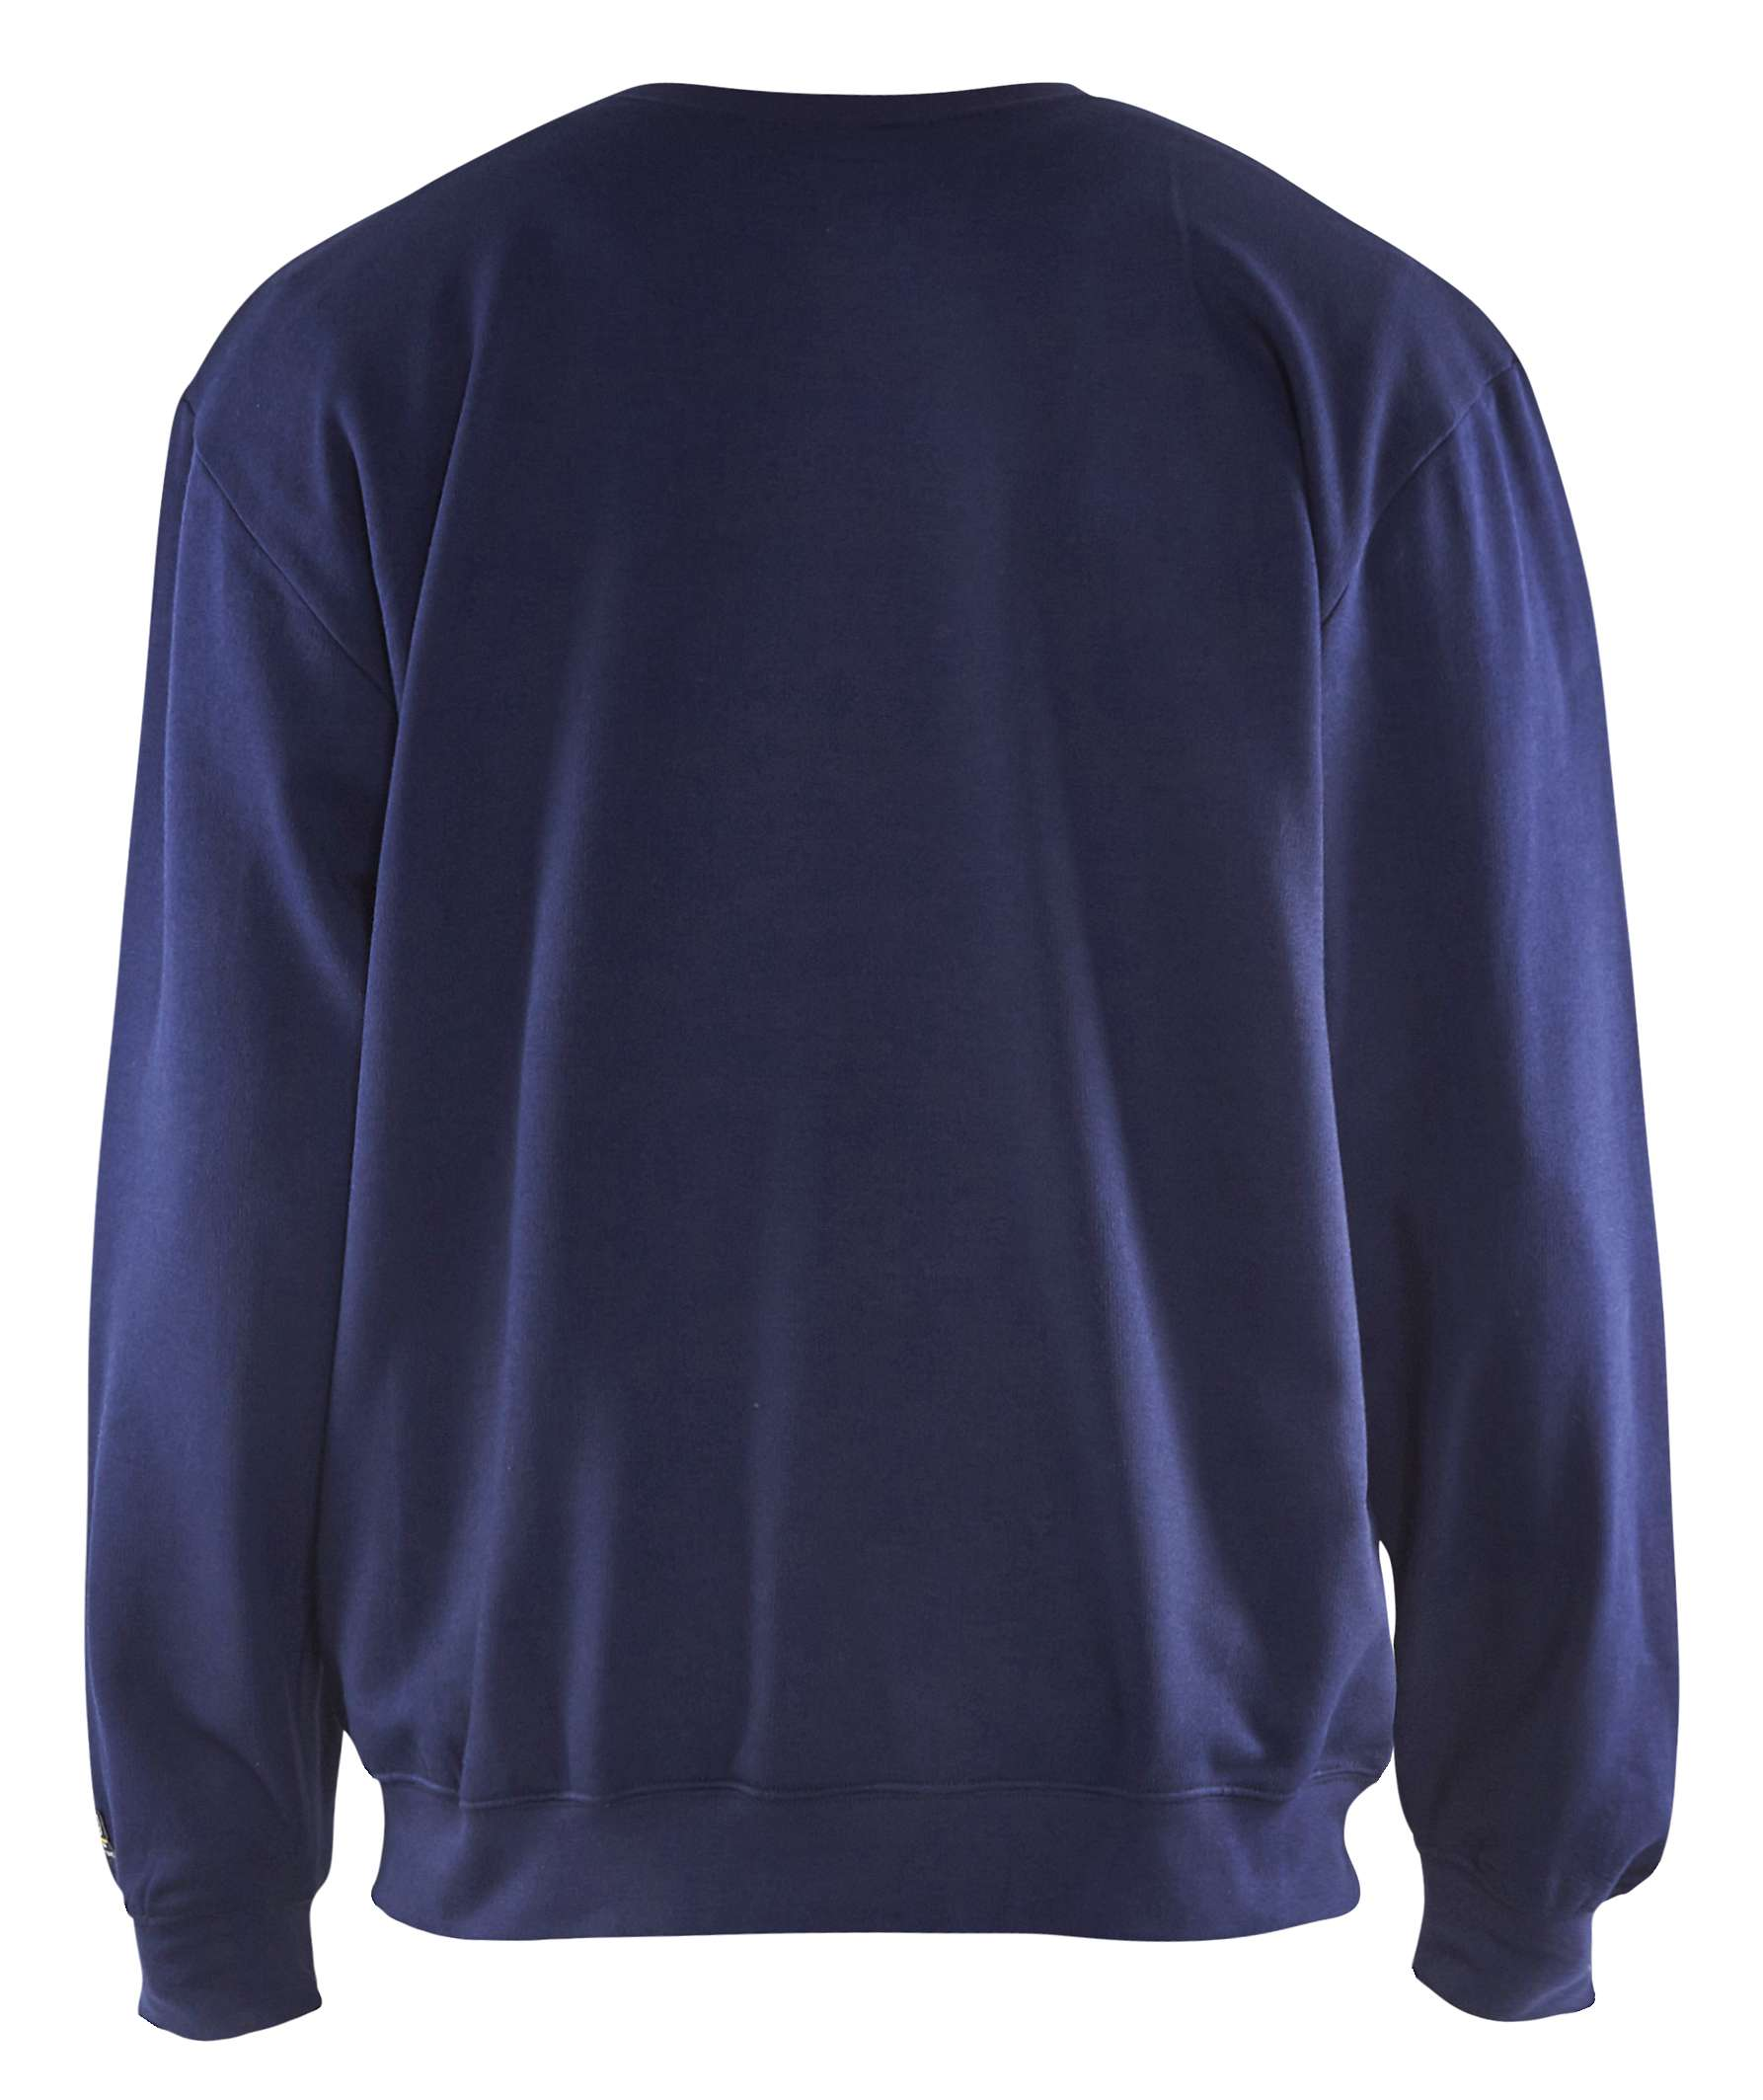 Blaklader Sweatshirts 30741760 Multinorm marineblauw(8900)